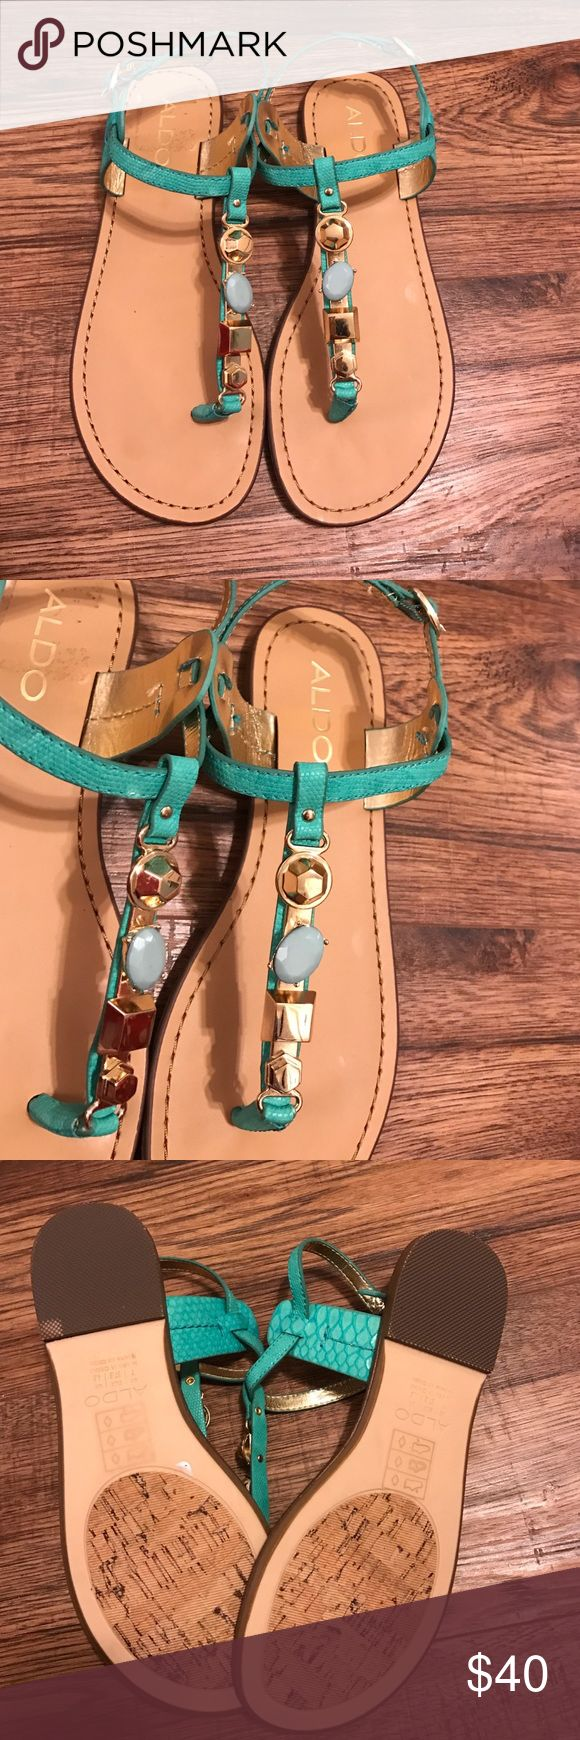 Also teal sandals Beautiful teal sandals with gold jewels. Not leather. But not worn. Aldo Shoes Sandals